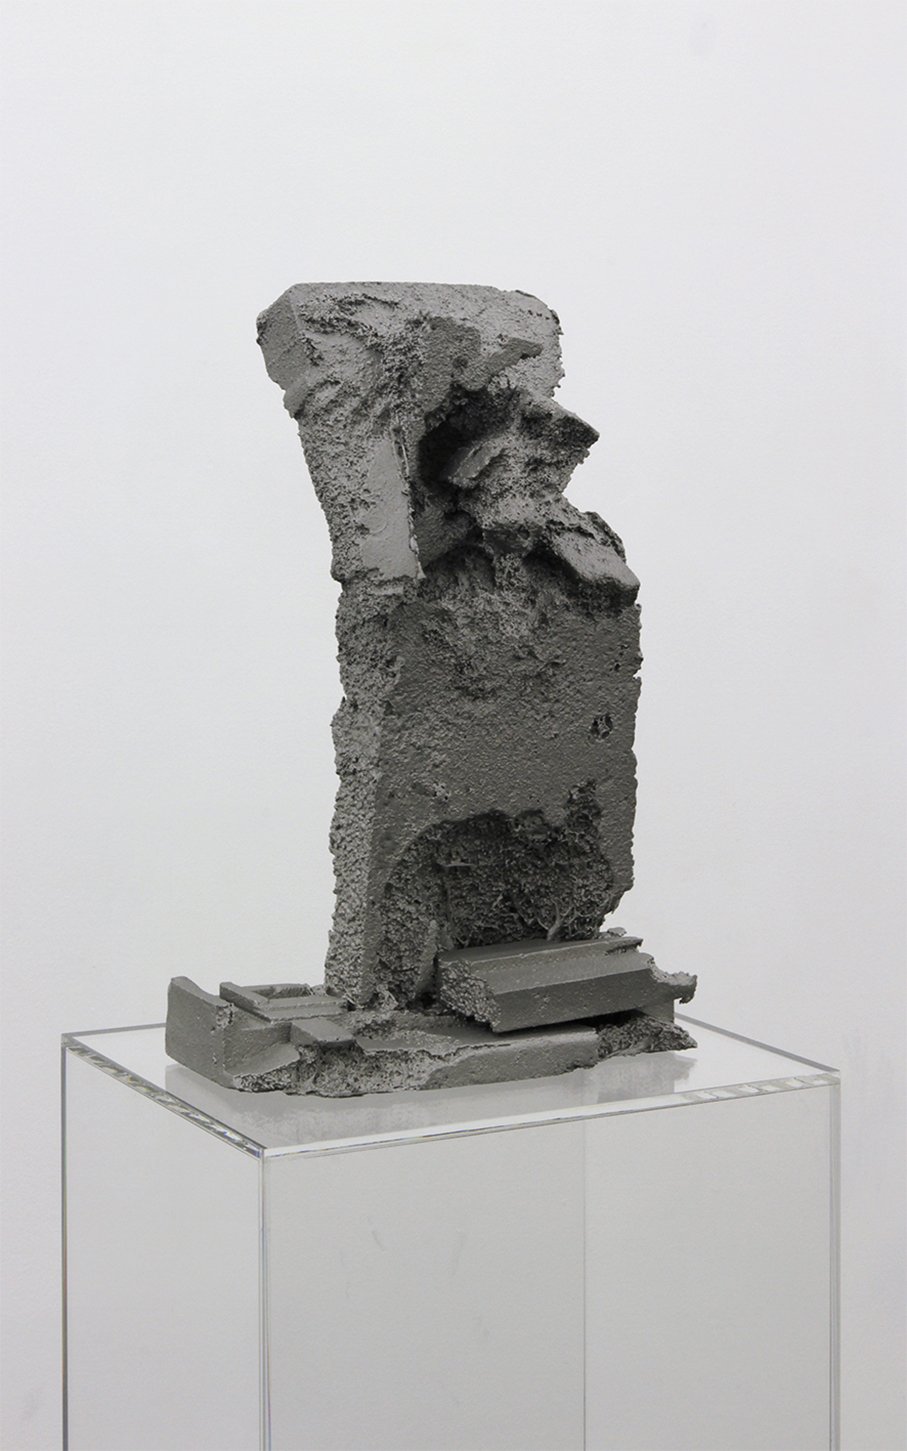 3_Theis Wendt_Ambient Reef # 1_aluminium cast and plexiglas plinth_132x36x42cm_2015.jpg